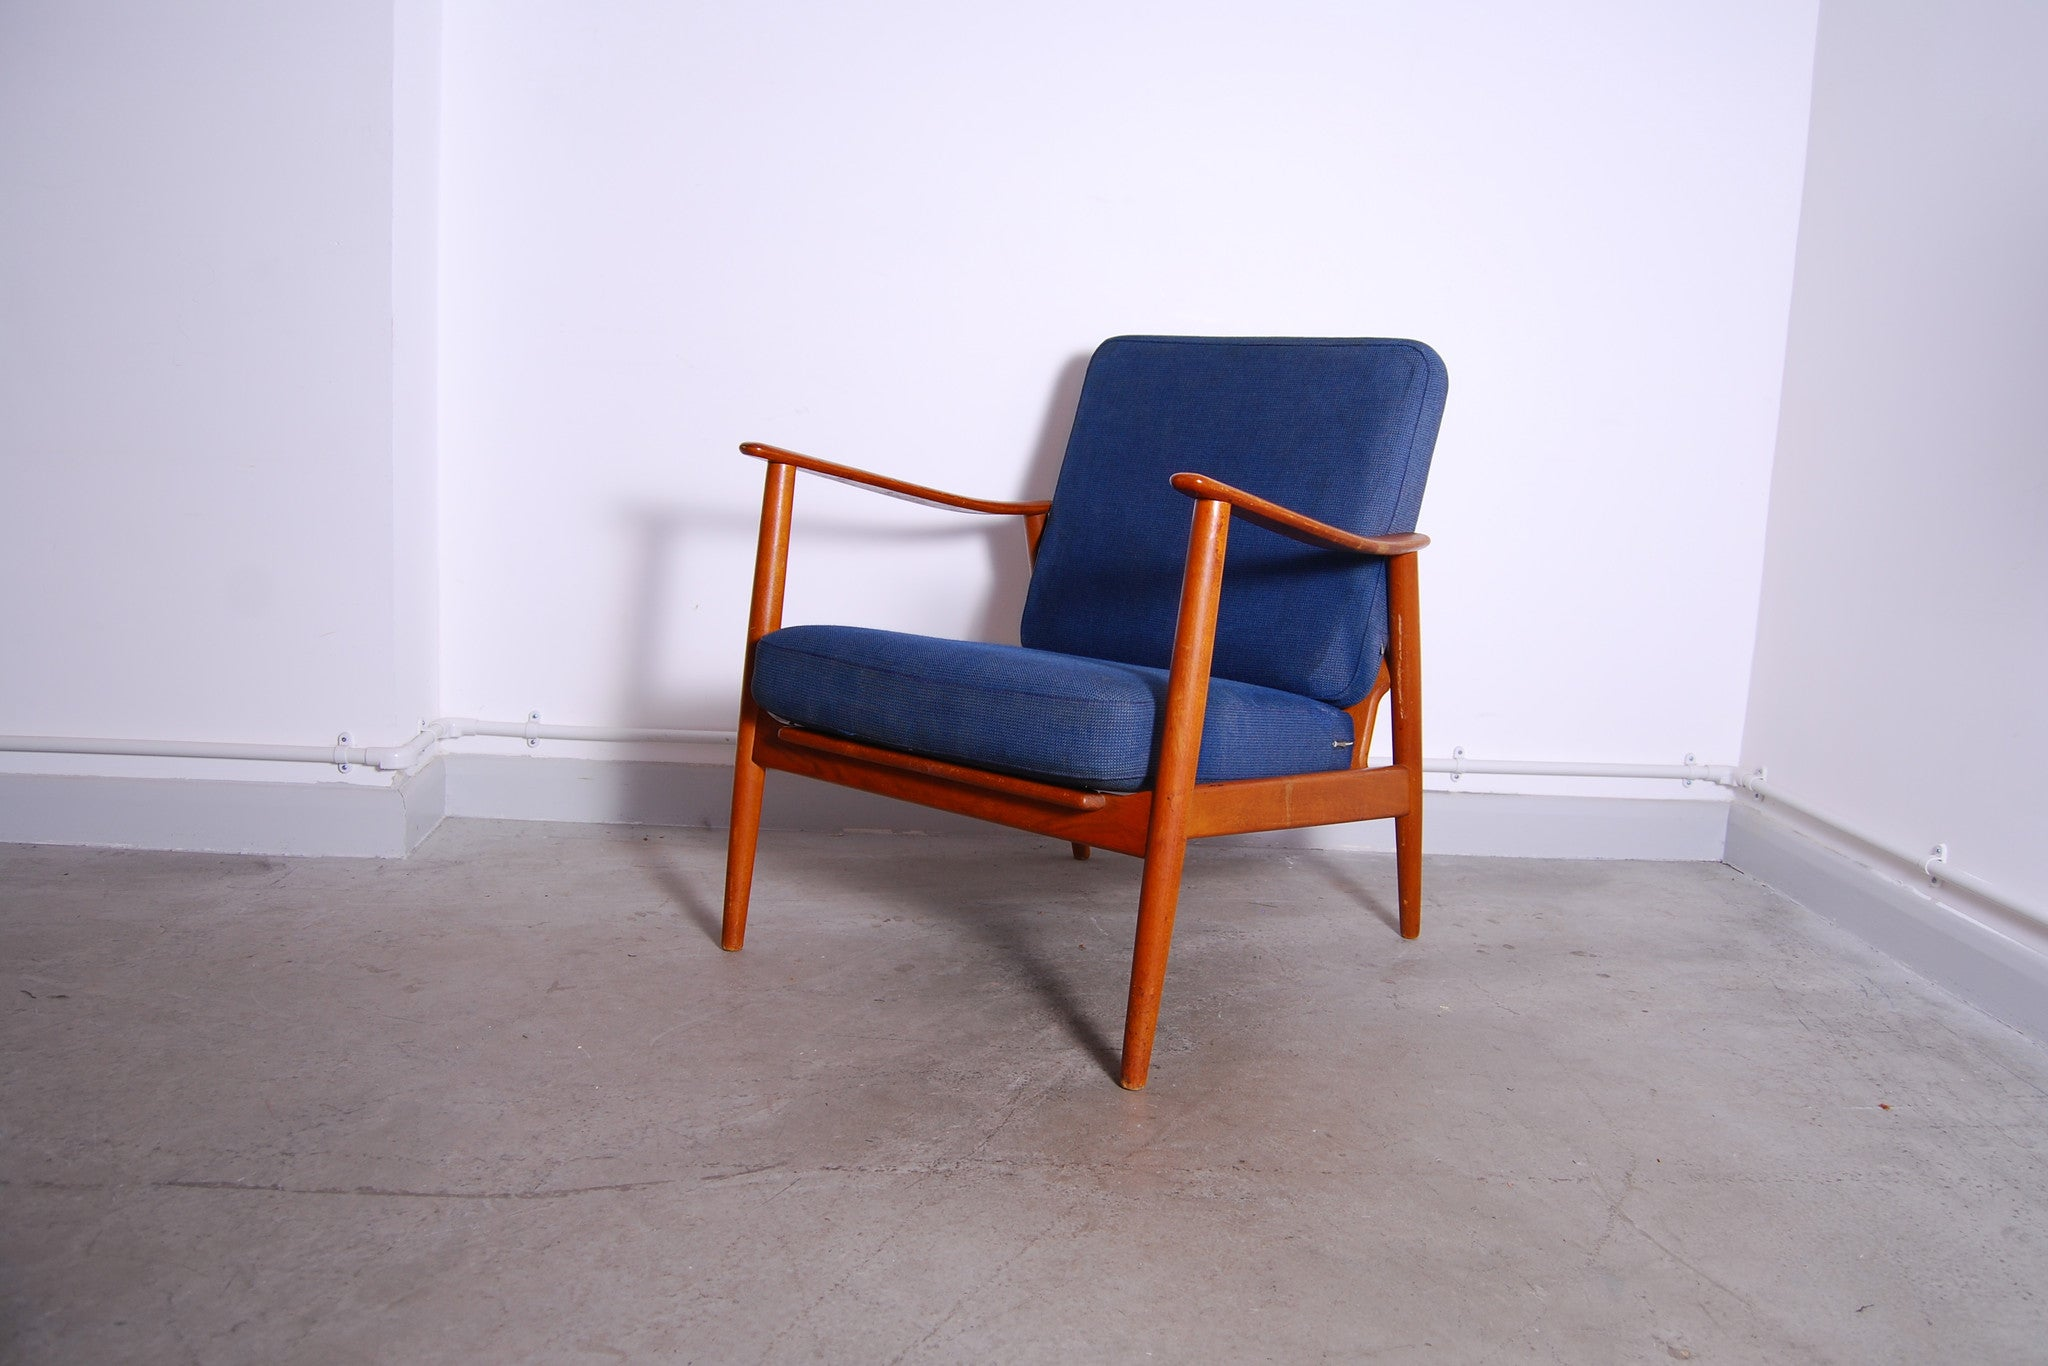 Teak lounge chair with royal blue cushions